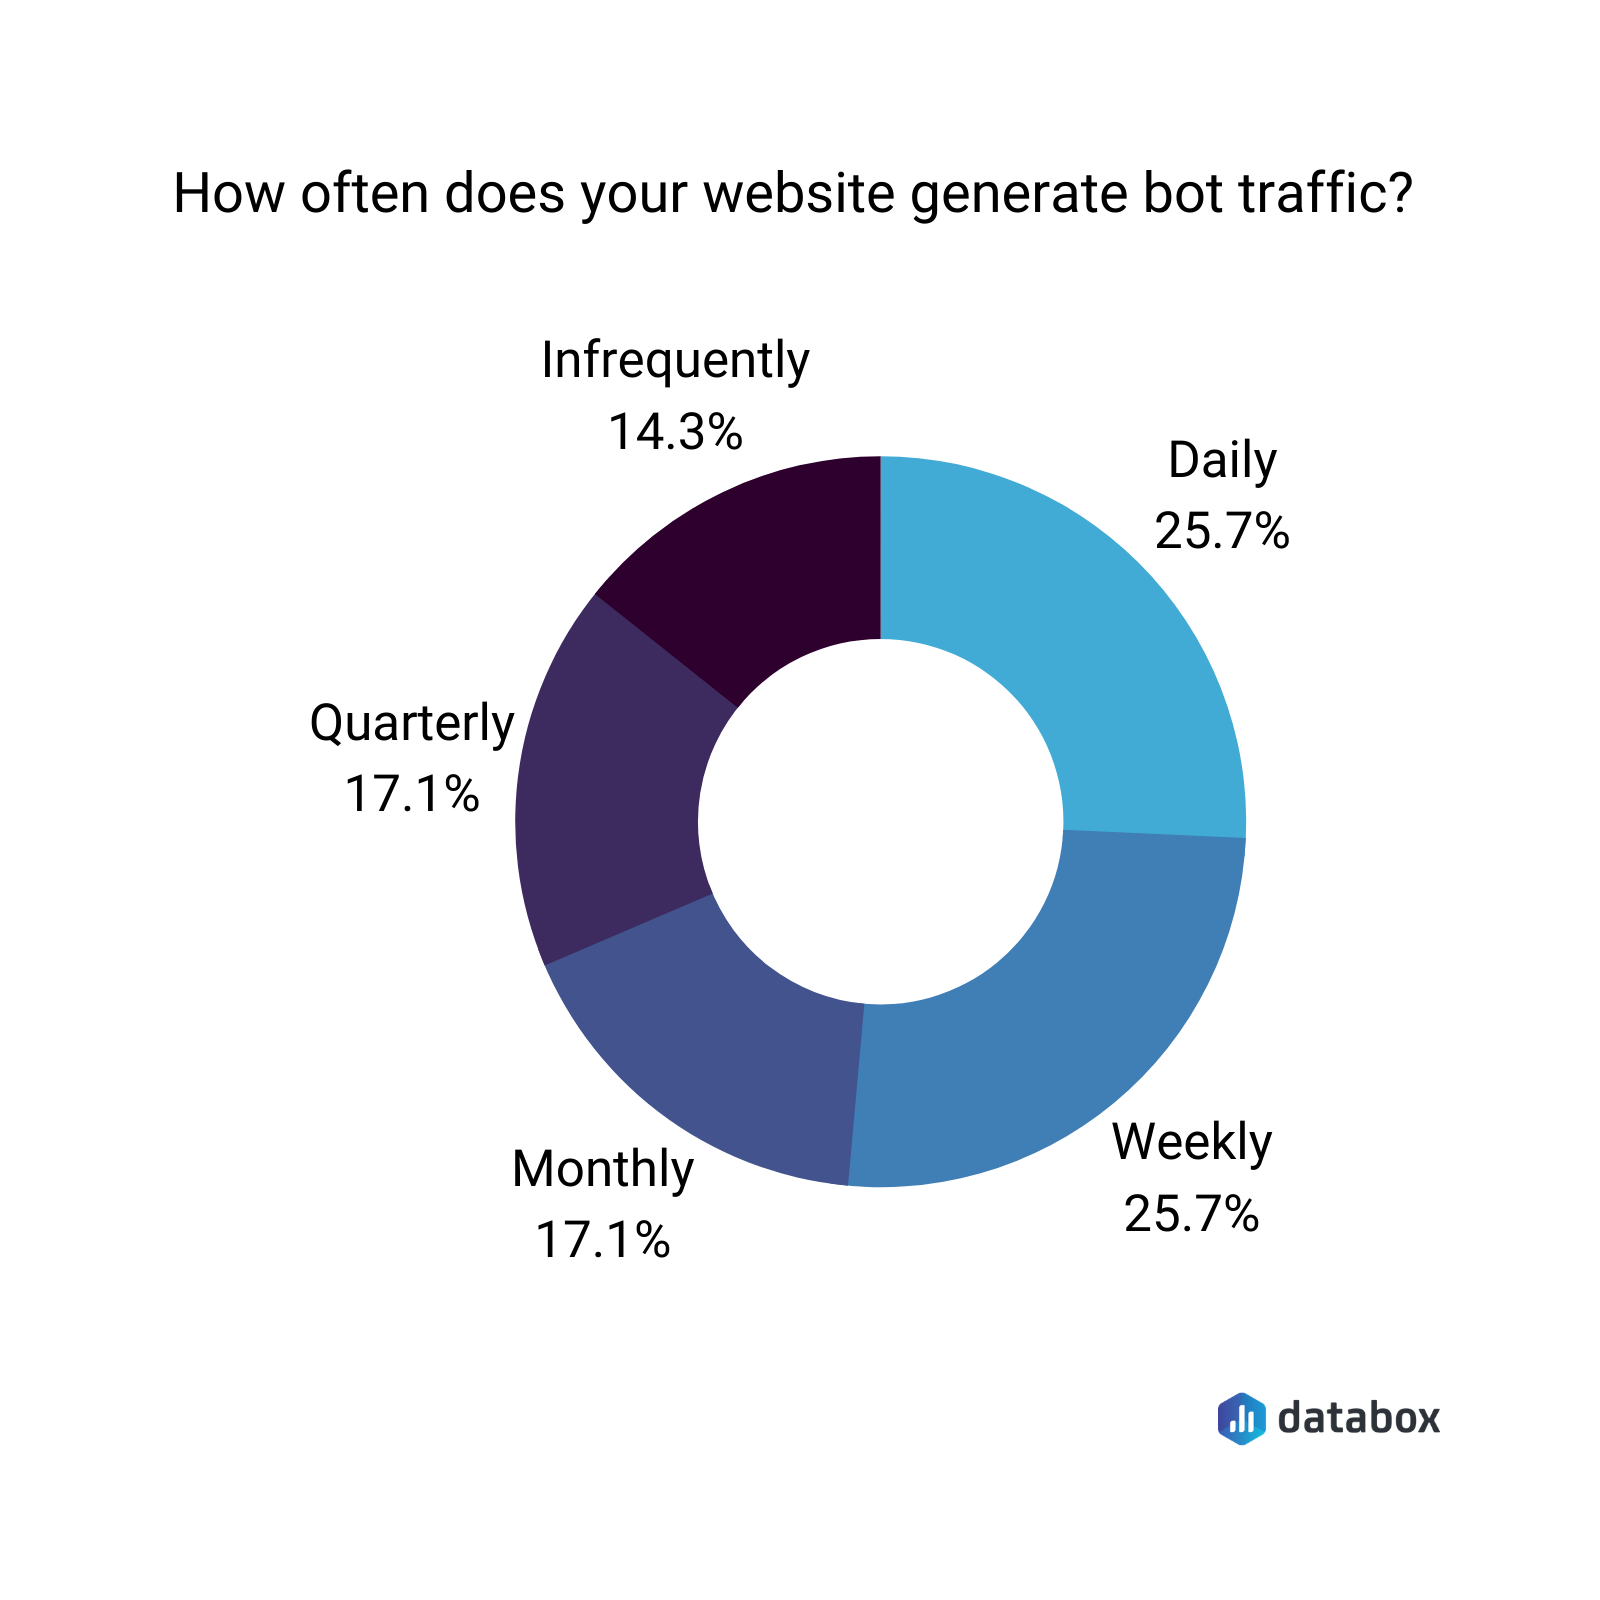 how often does your website generate bot traffic?